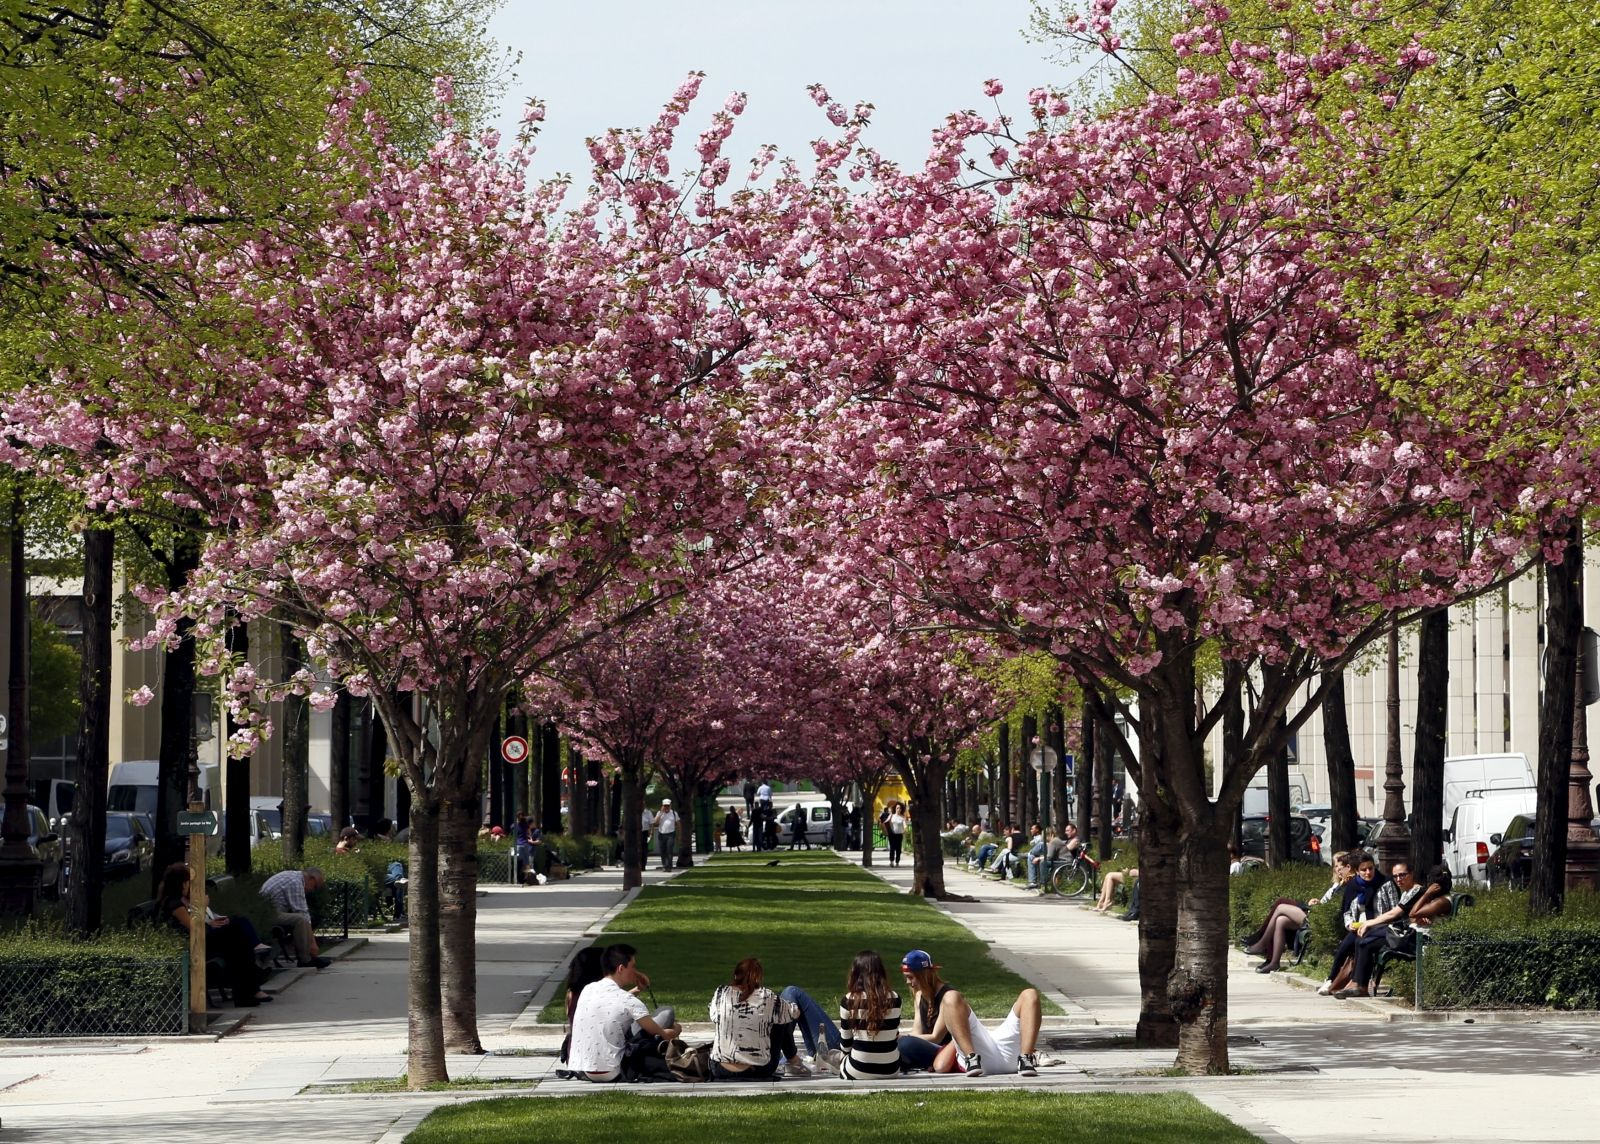 Urban trees health benefits